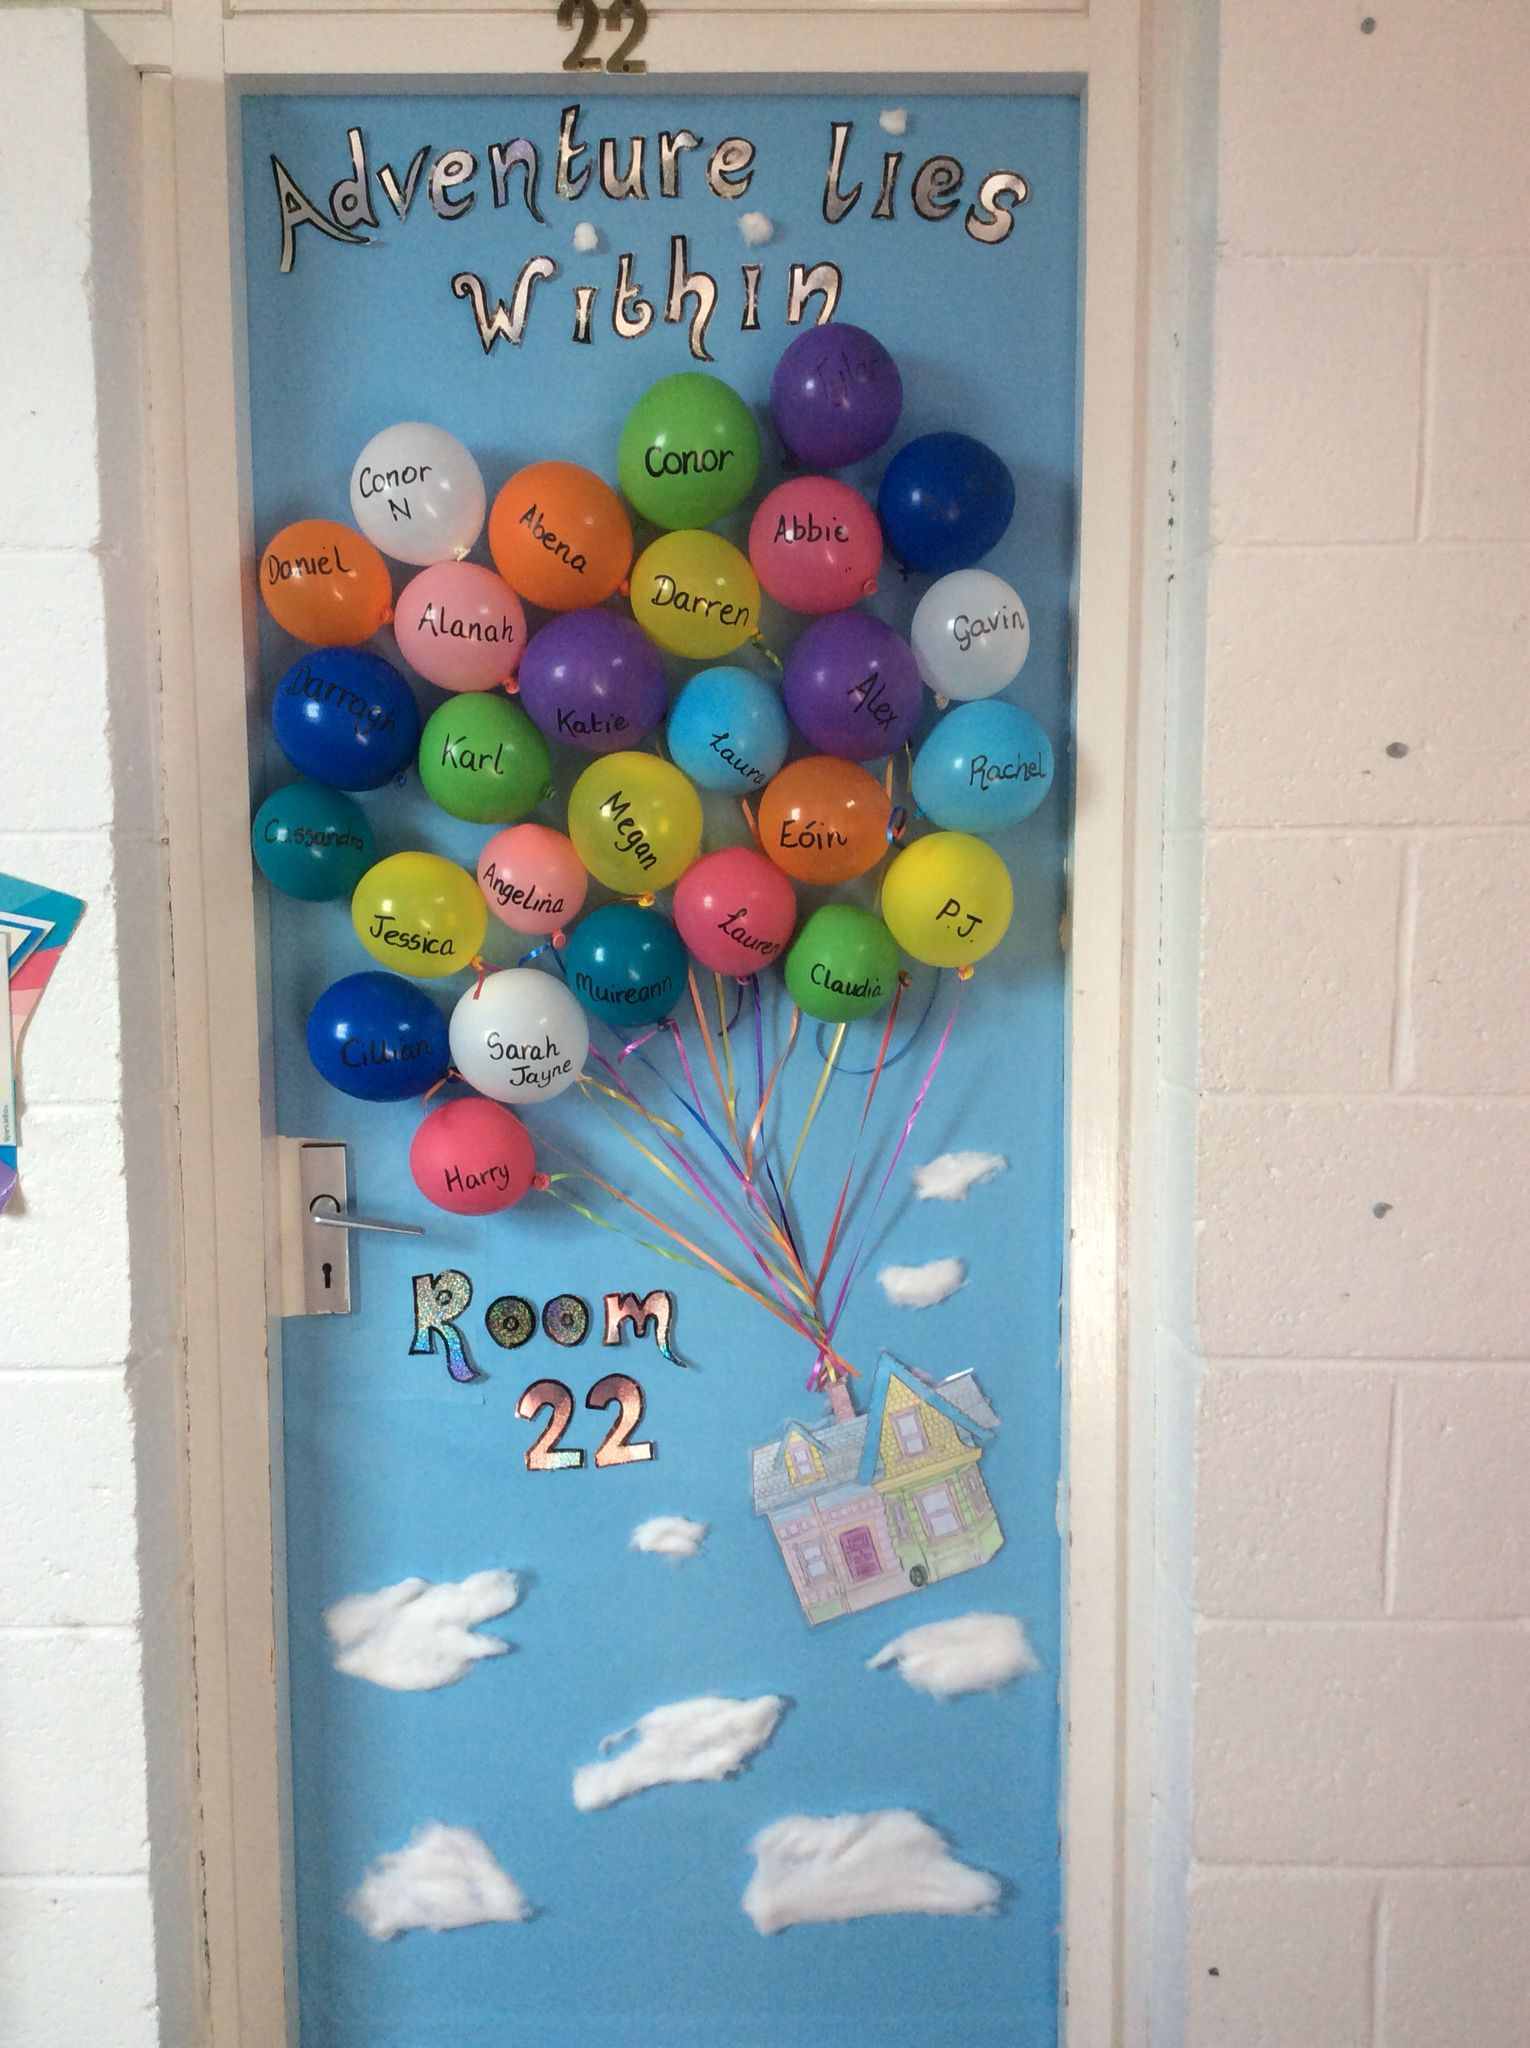 My Disney Up themed classroom door display for this term